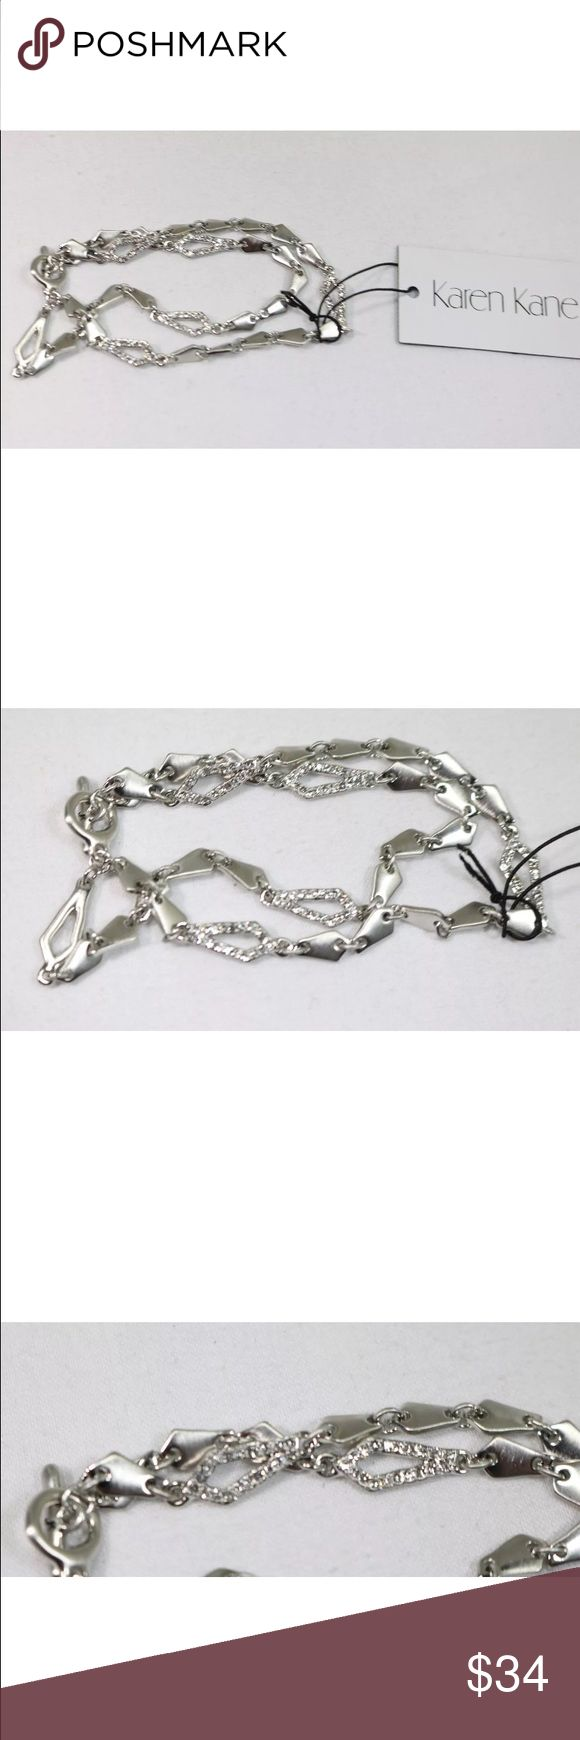 """Karen Kane link bracelet Karen Kane Silver Tone Clear Crystal Dual Strand Toggle Bracelet NEW. The item is new with tags.    It is about 8"""" long.  It retails for $68. Karen Kane Jewelry Bracelets"""